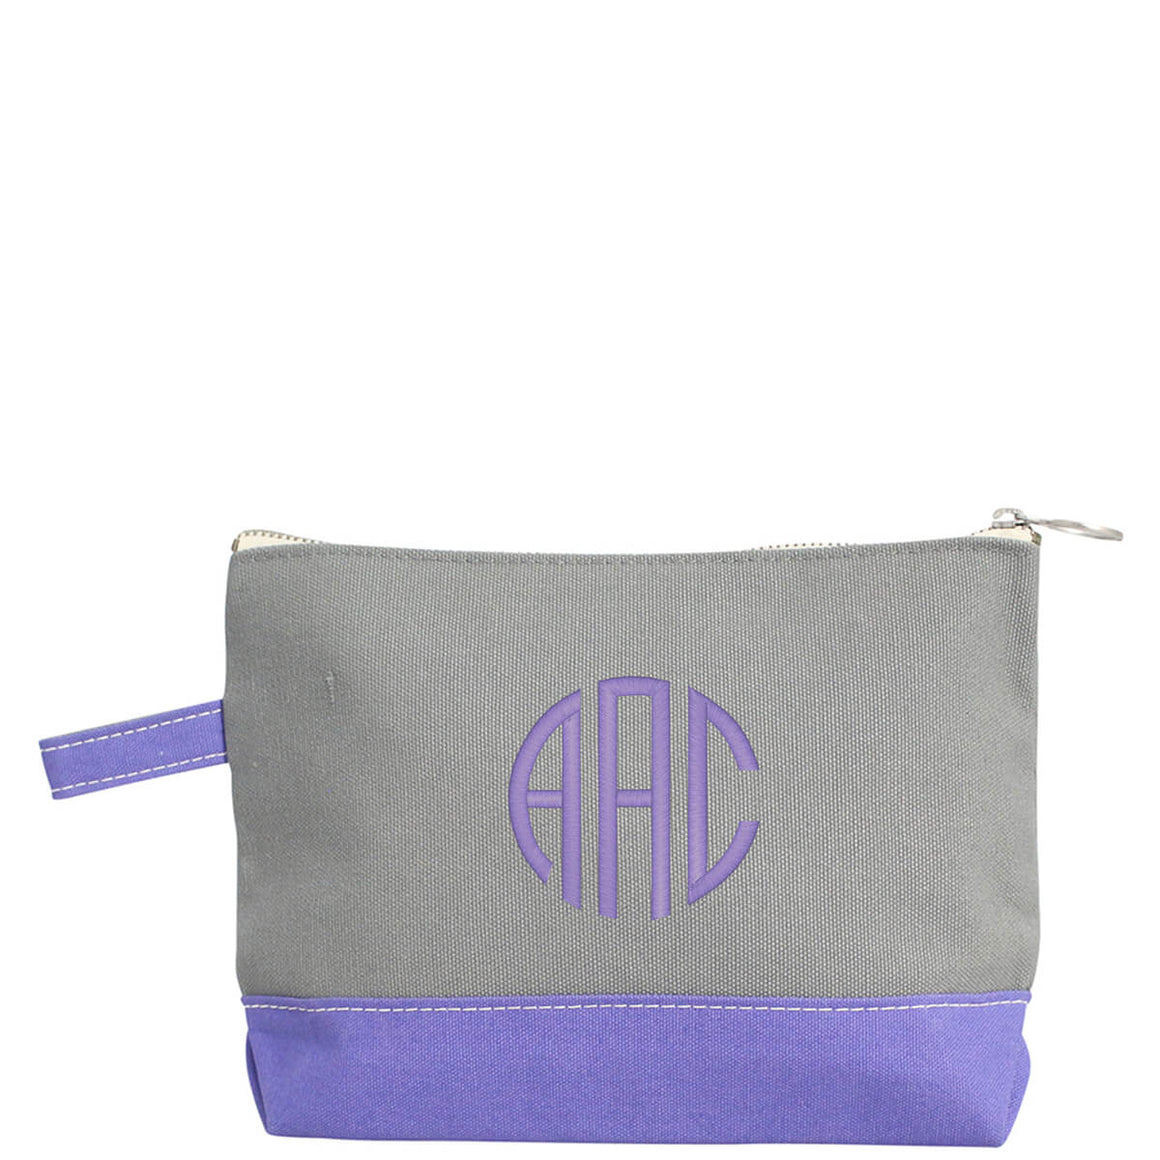 Monogram Grey Canvas Pouch with Purple Trim - The Preppy Bunny